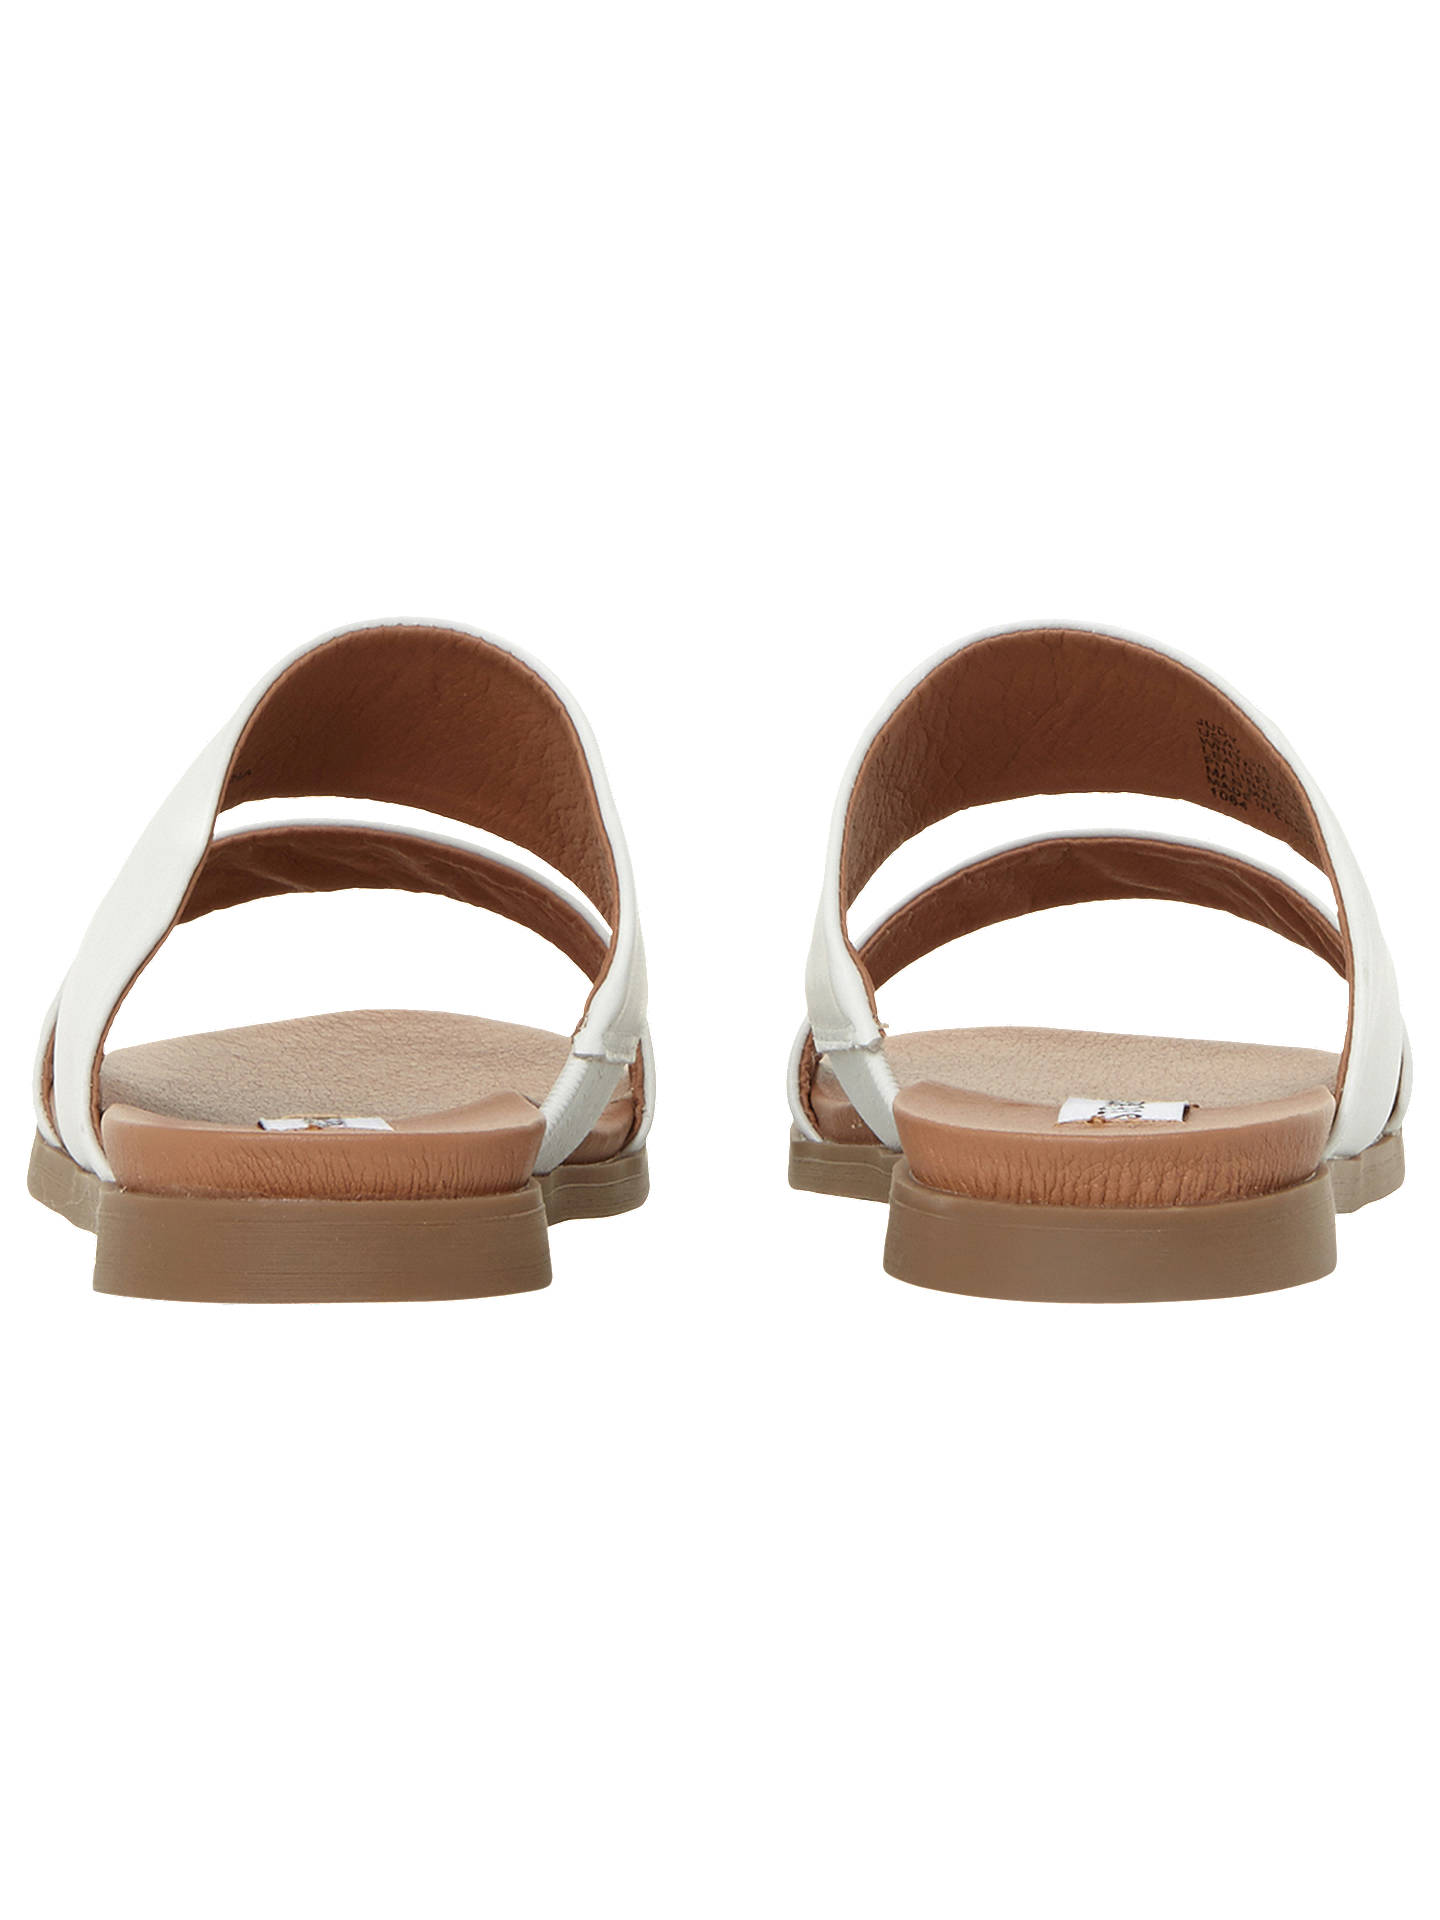 e99b2680d35 Steve Madden Judy Two Band Leather Sliders at John Lewis & Partners